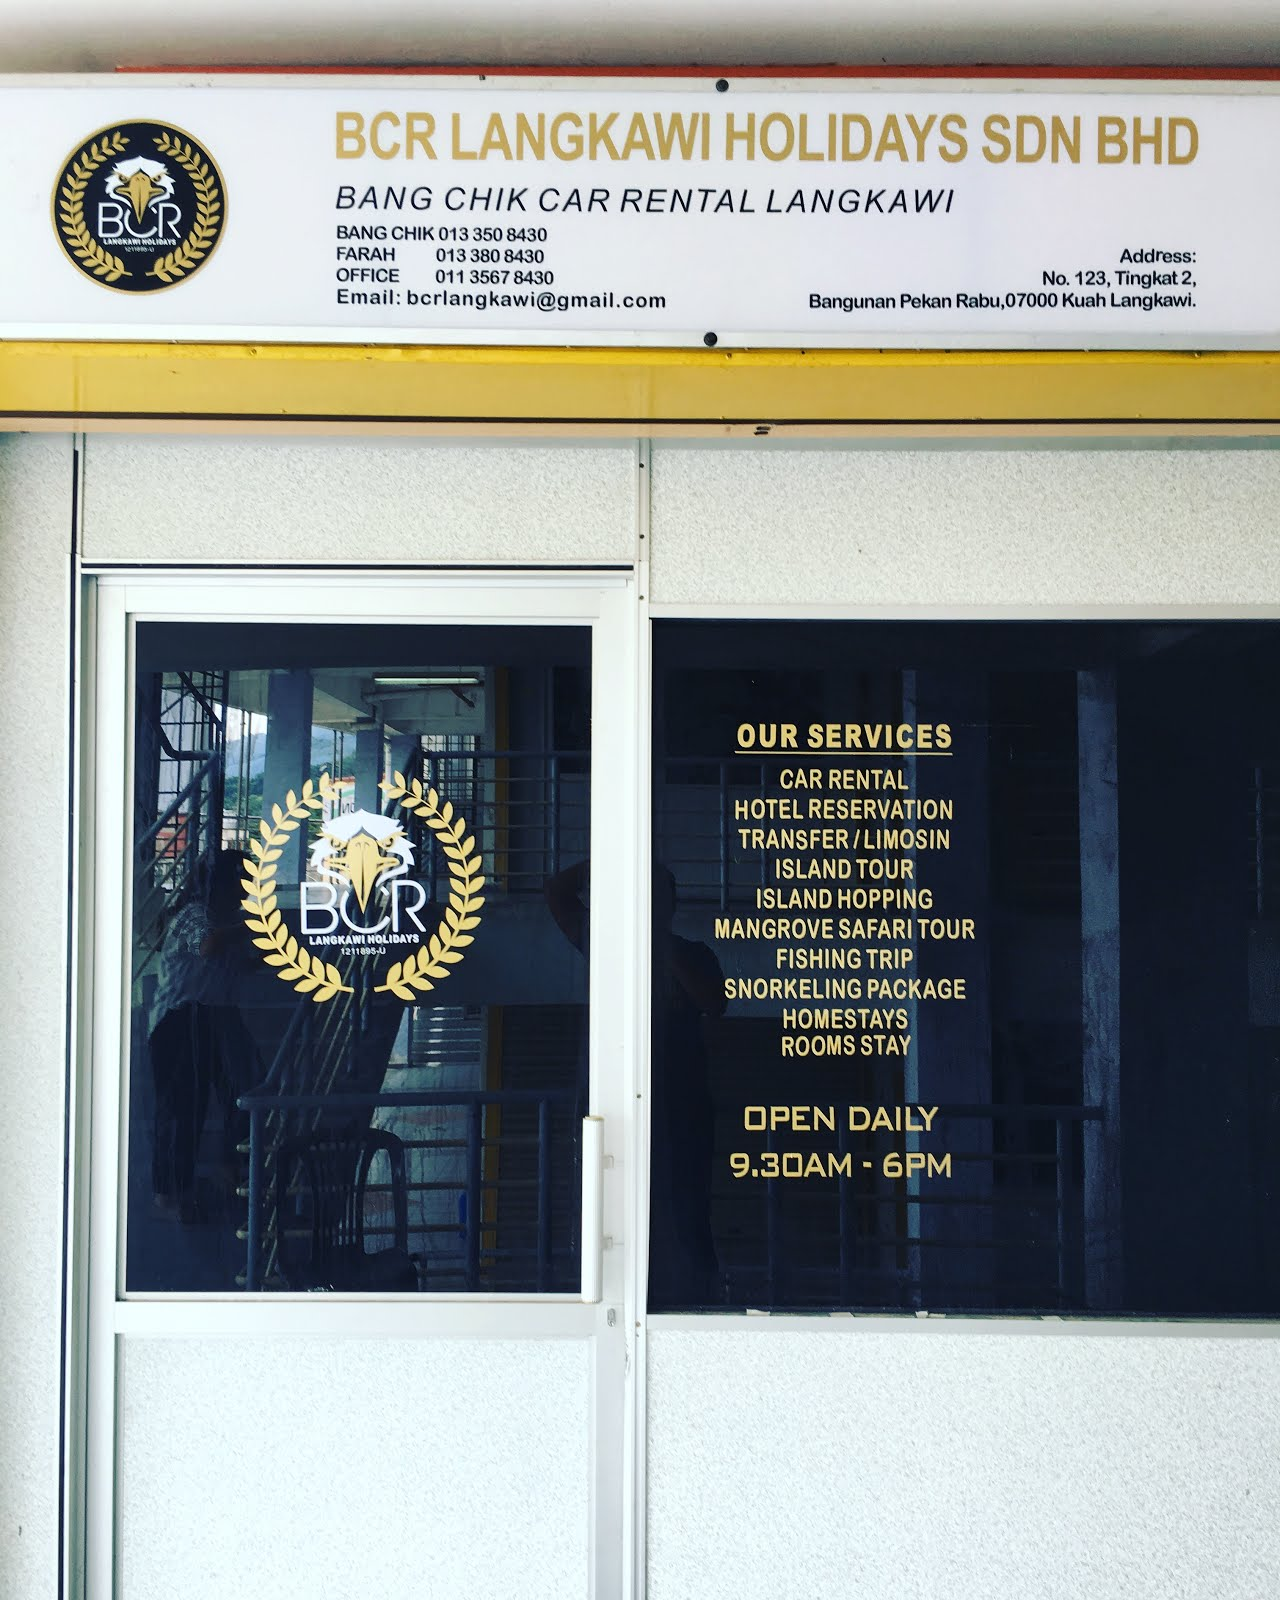 OFFICE : BCR LANGKAWI HOLIDAYS